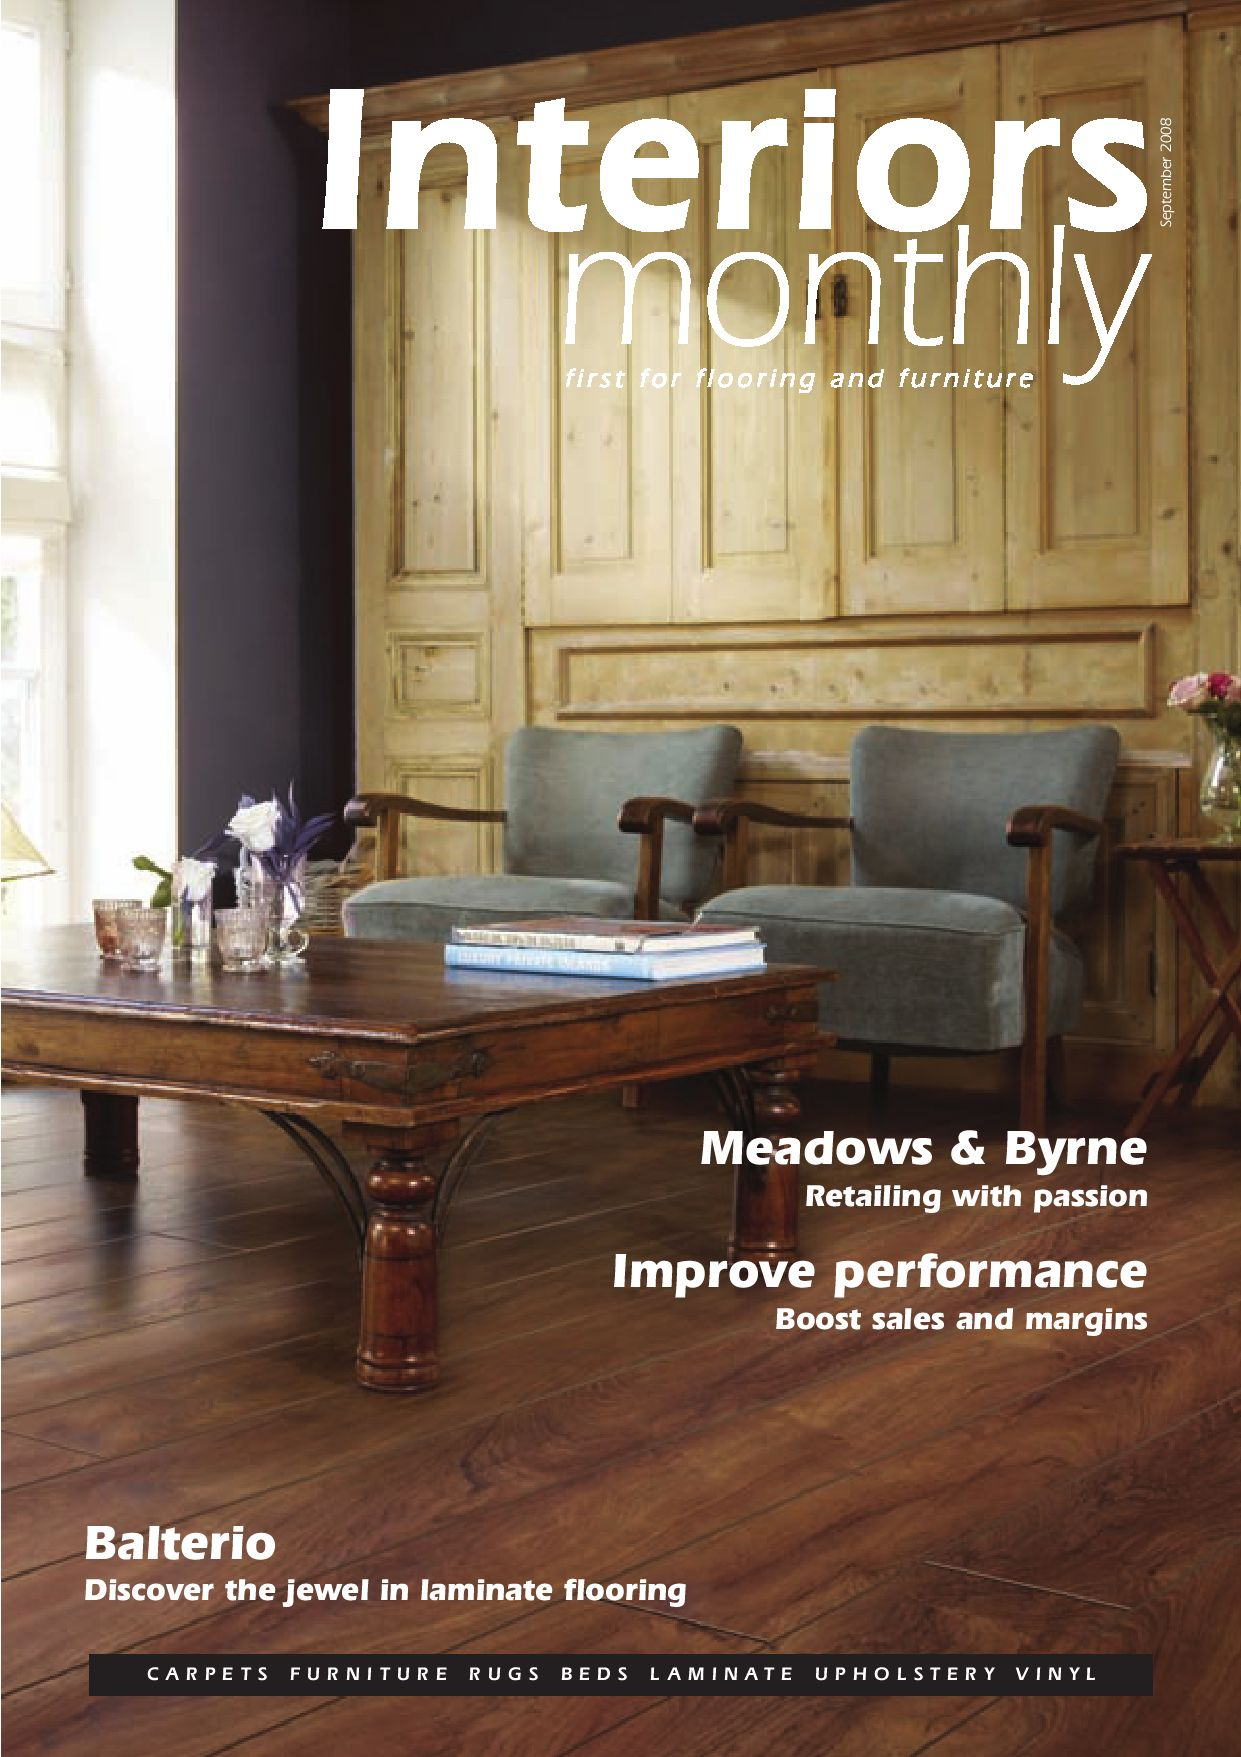 Interiors monthly september 2008 by interiors monthly issuu for Balterio stockists uk